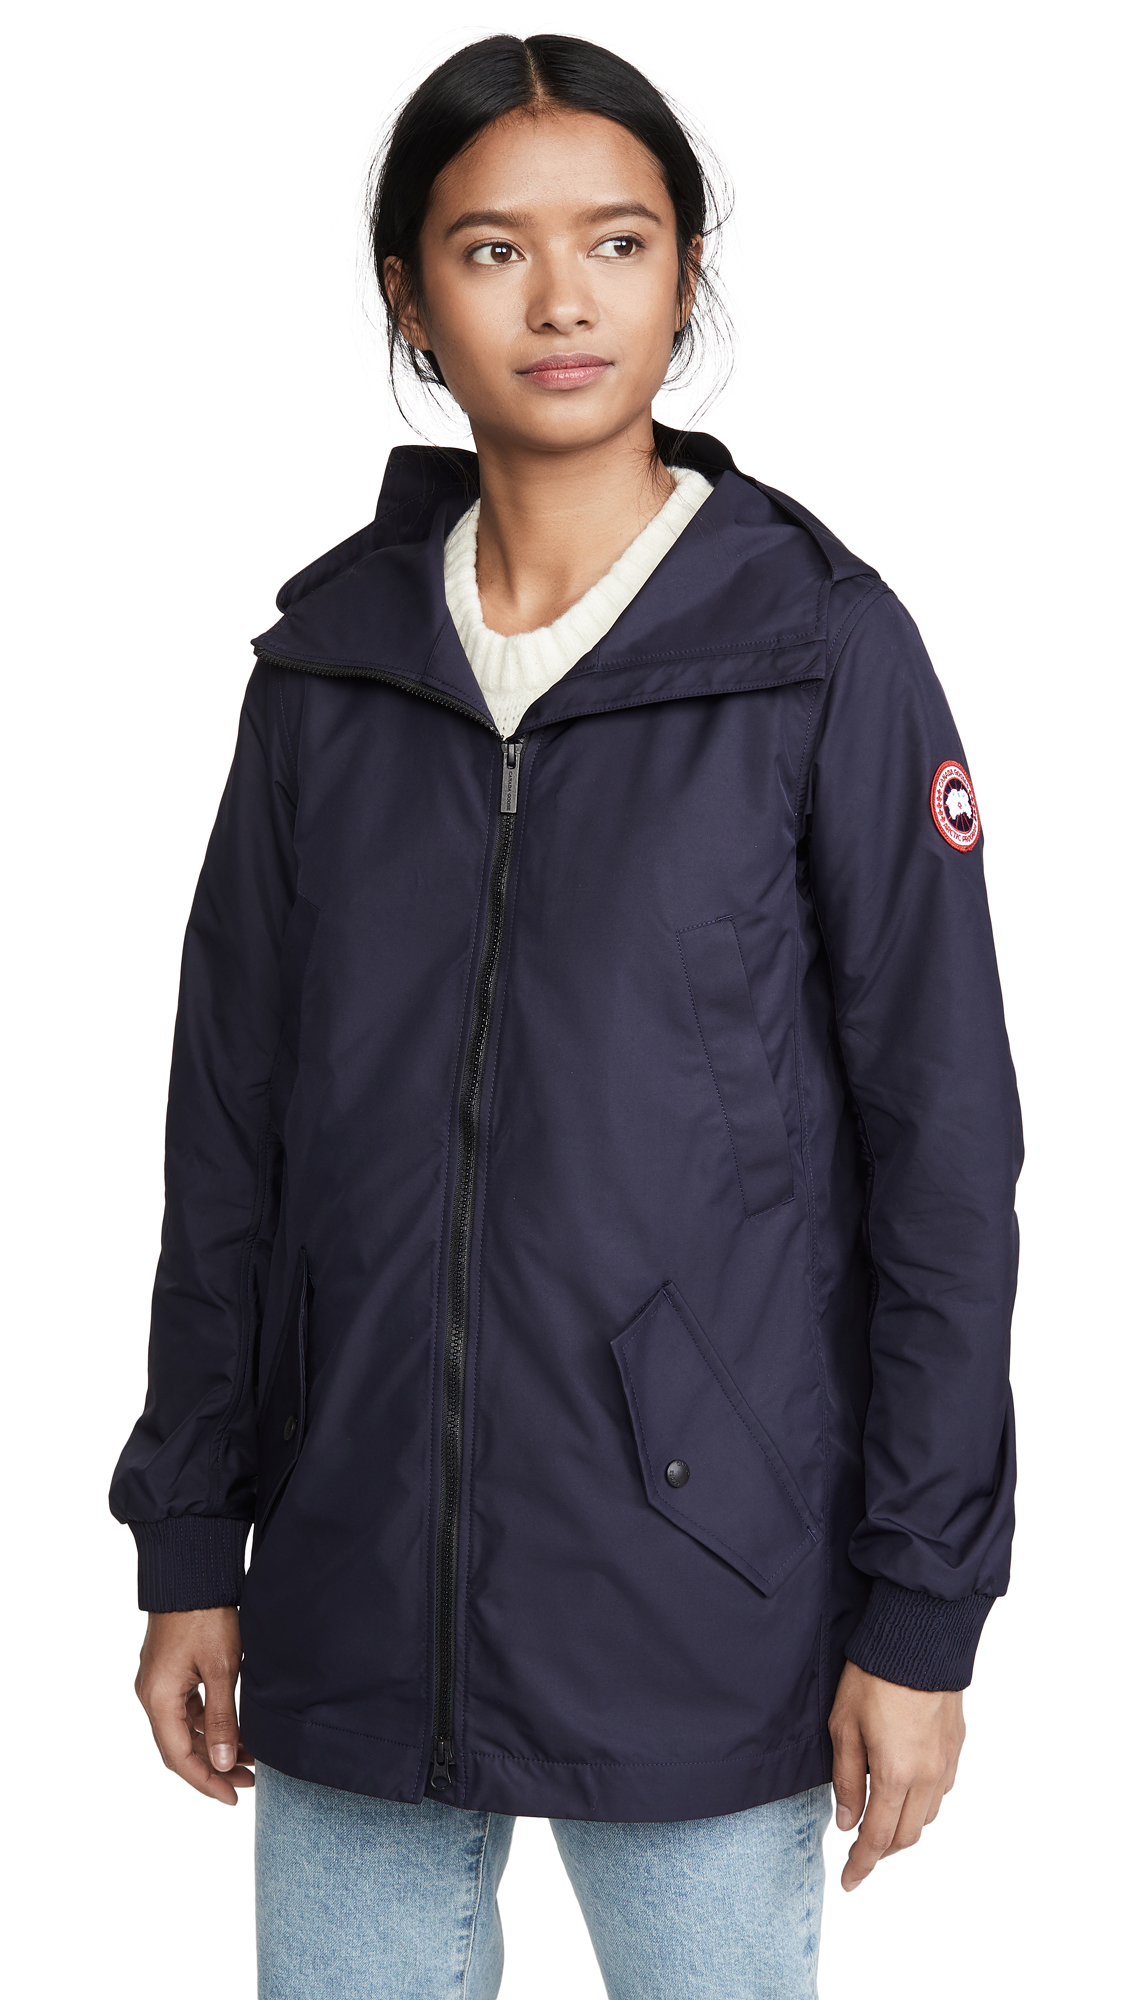 Buy Canada Goose Ellscott Jacket online beautiful Canada Goose Jackets, Coats, Trench Coats